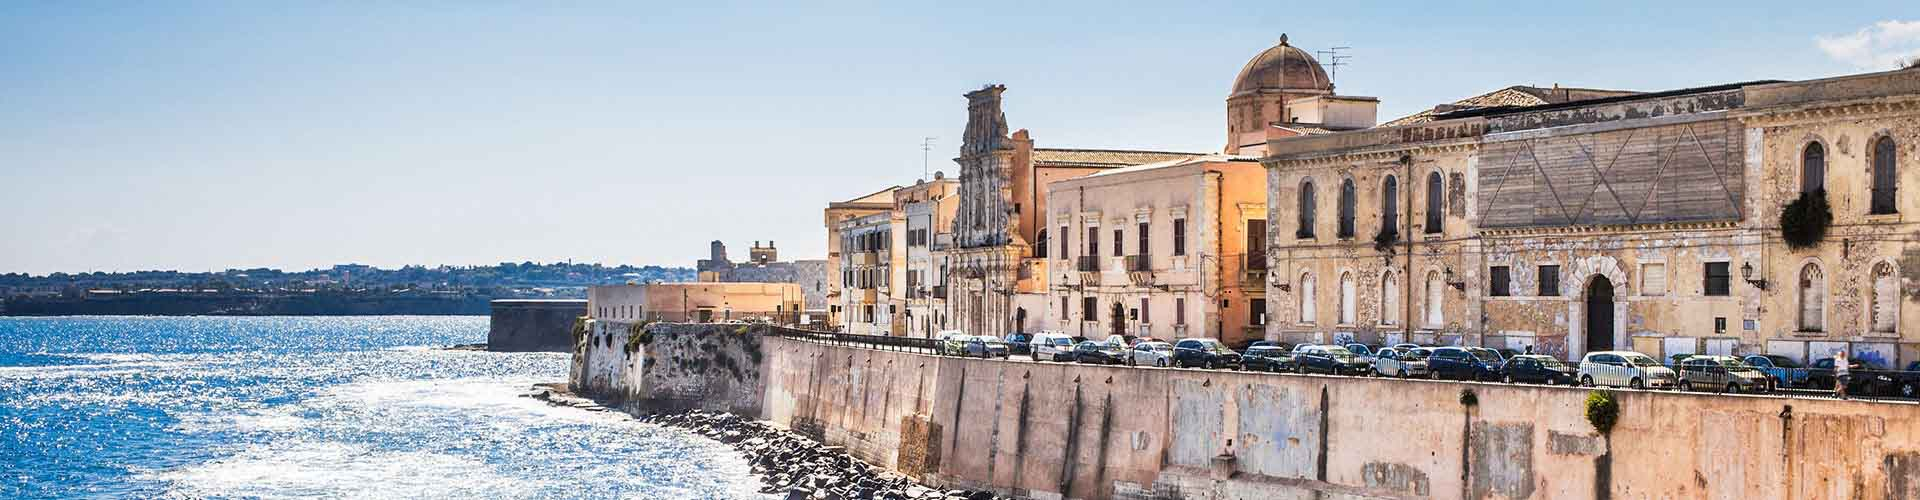 Siracusa – Hostels in Siracusa. Maps for Siracusa, Photos and Reviews for each hostel in Siracusa.